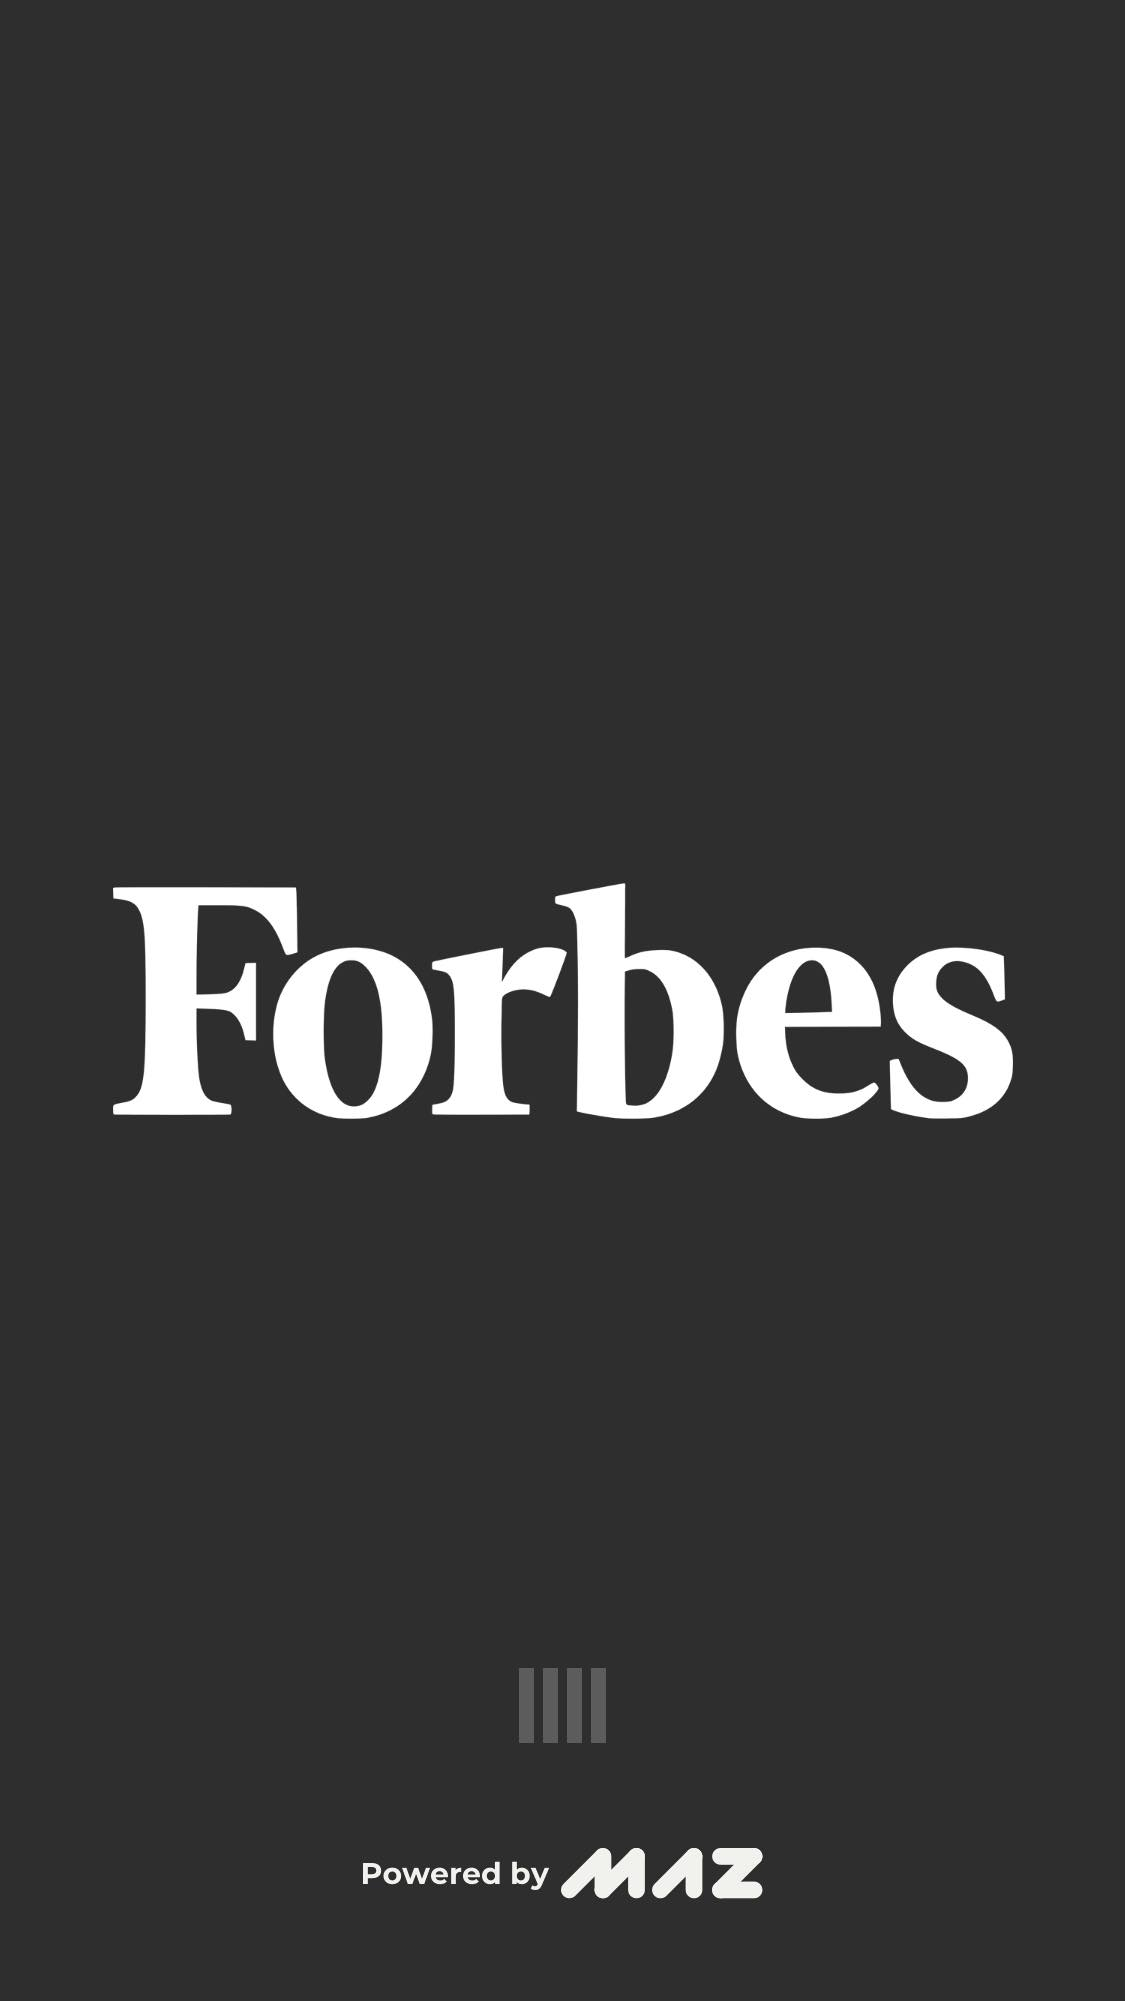 Loading on iOS by Forbes